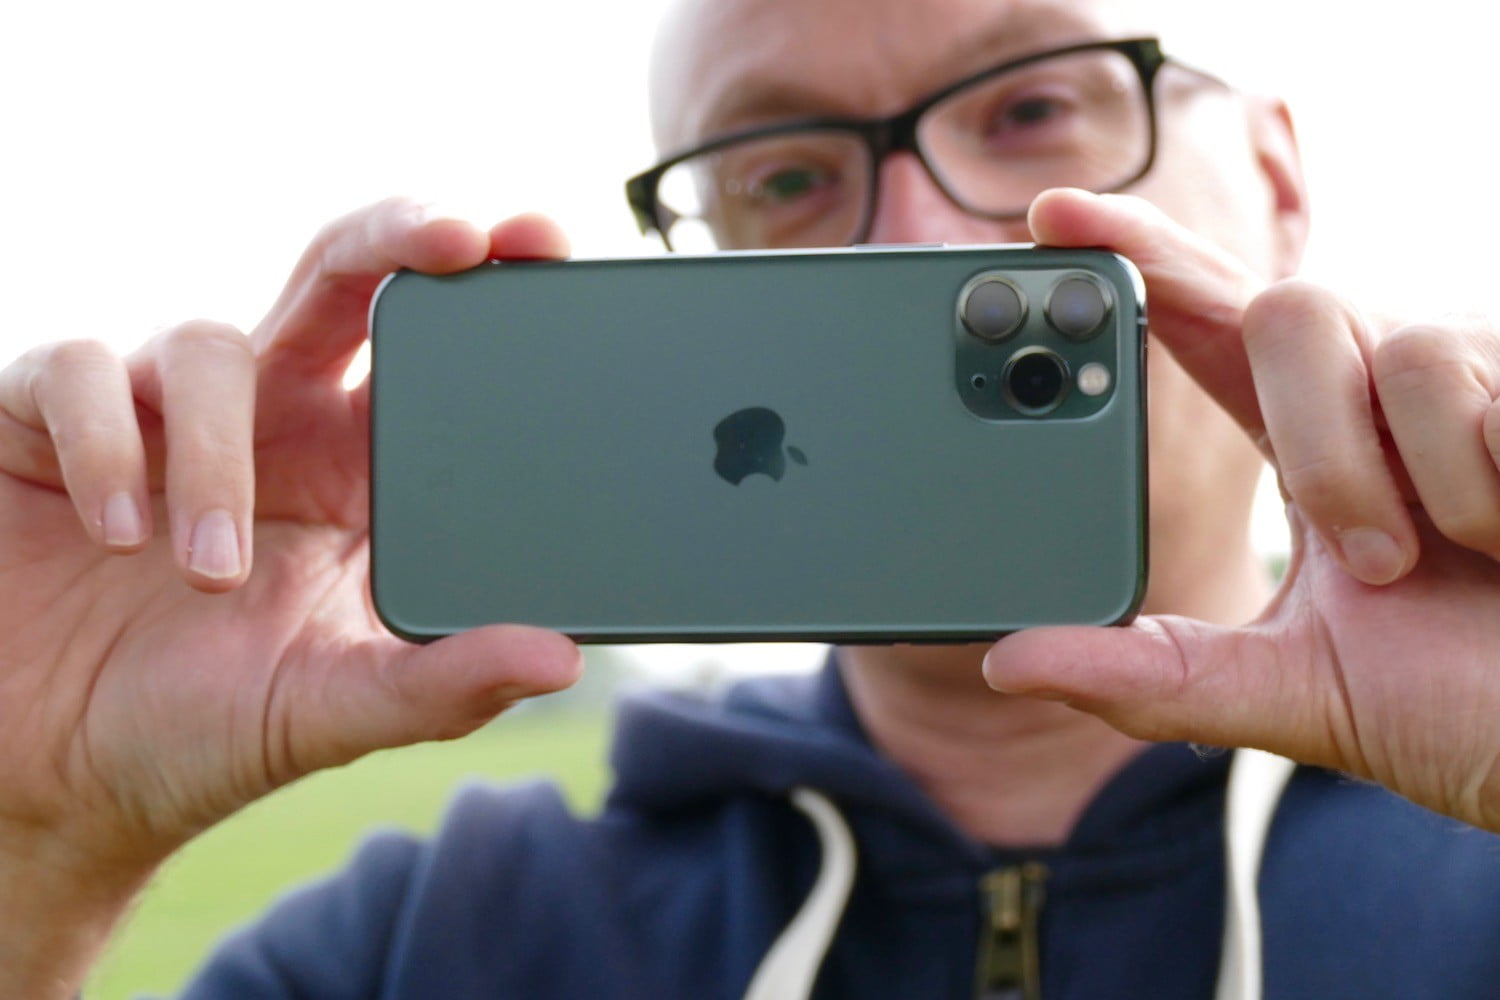 Apple iPhone 11 Pro Camera Guide: Take Better Photos with These Tips | Digital Trends